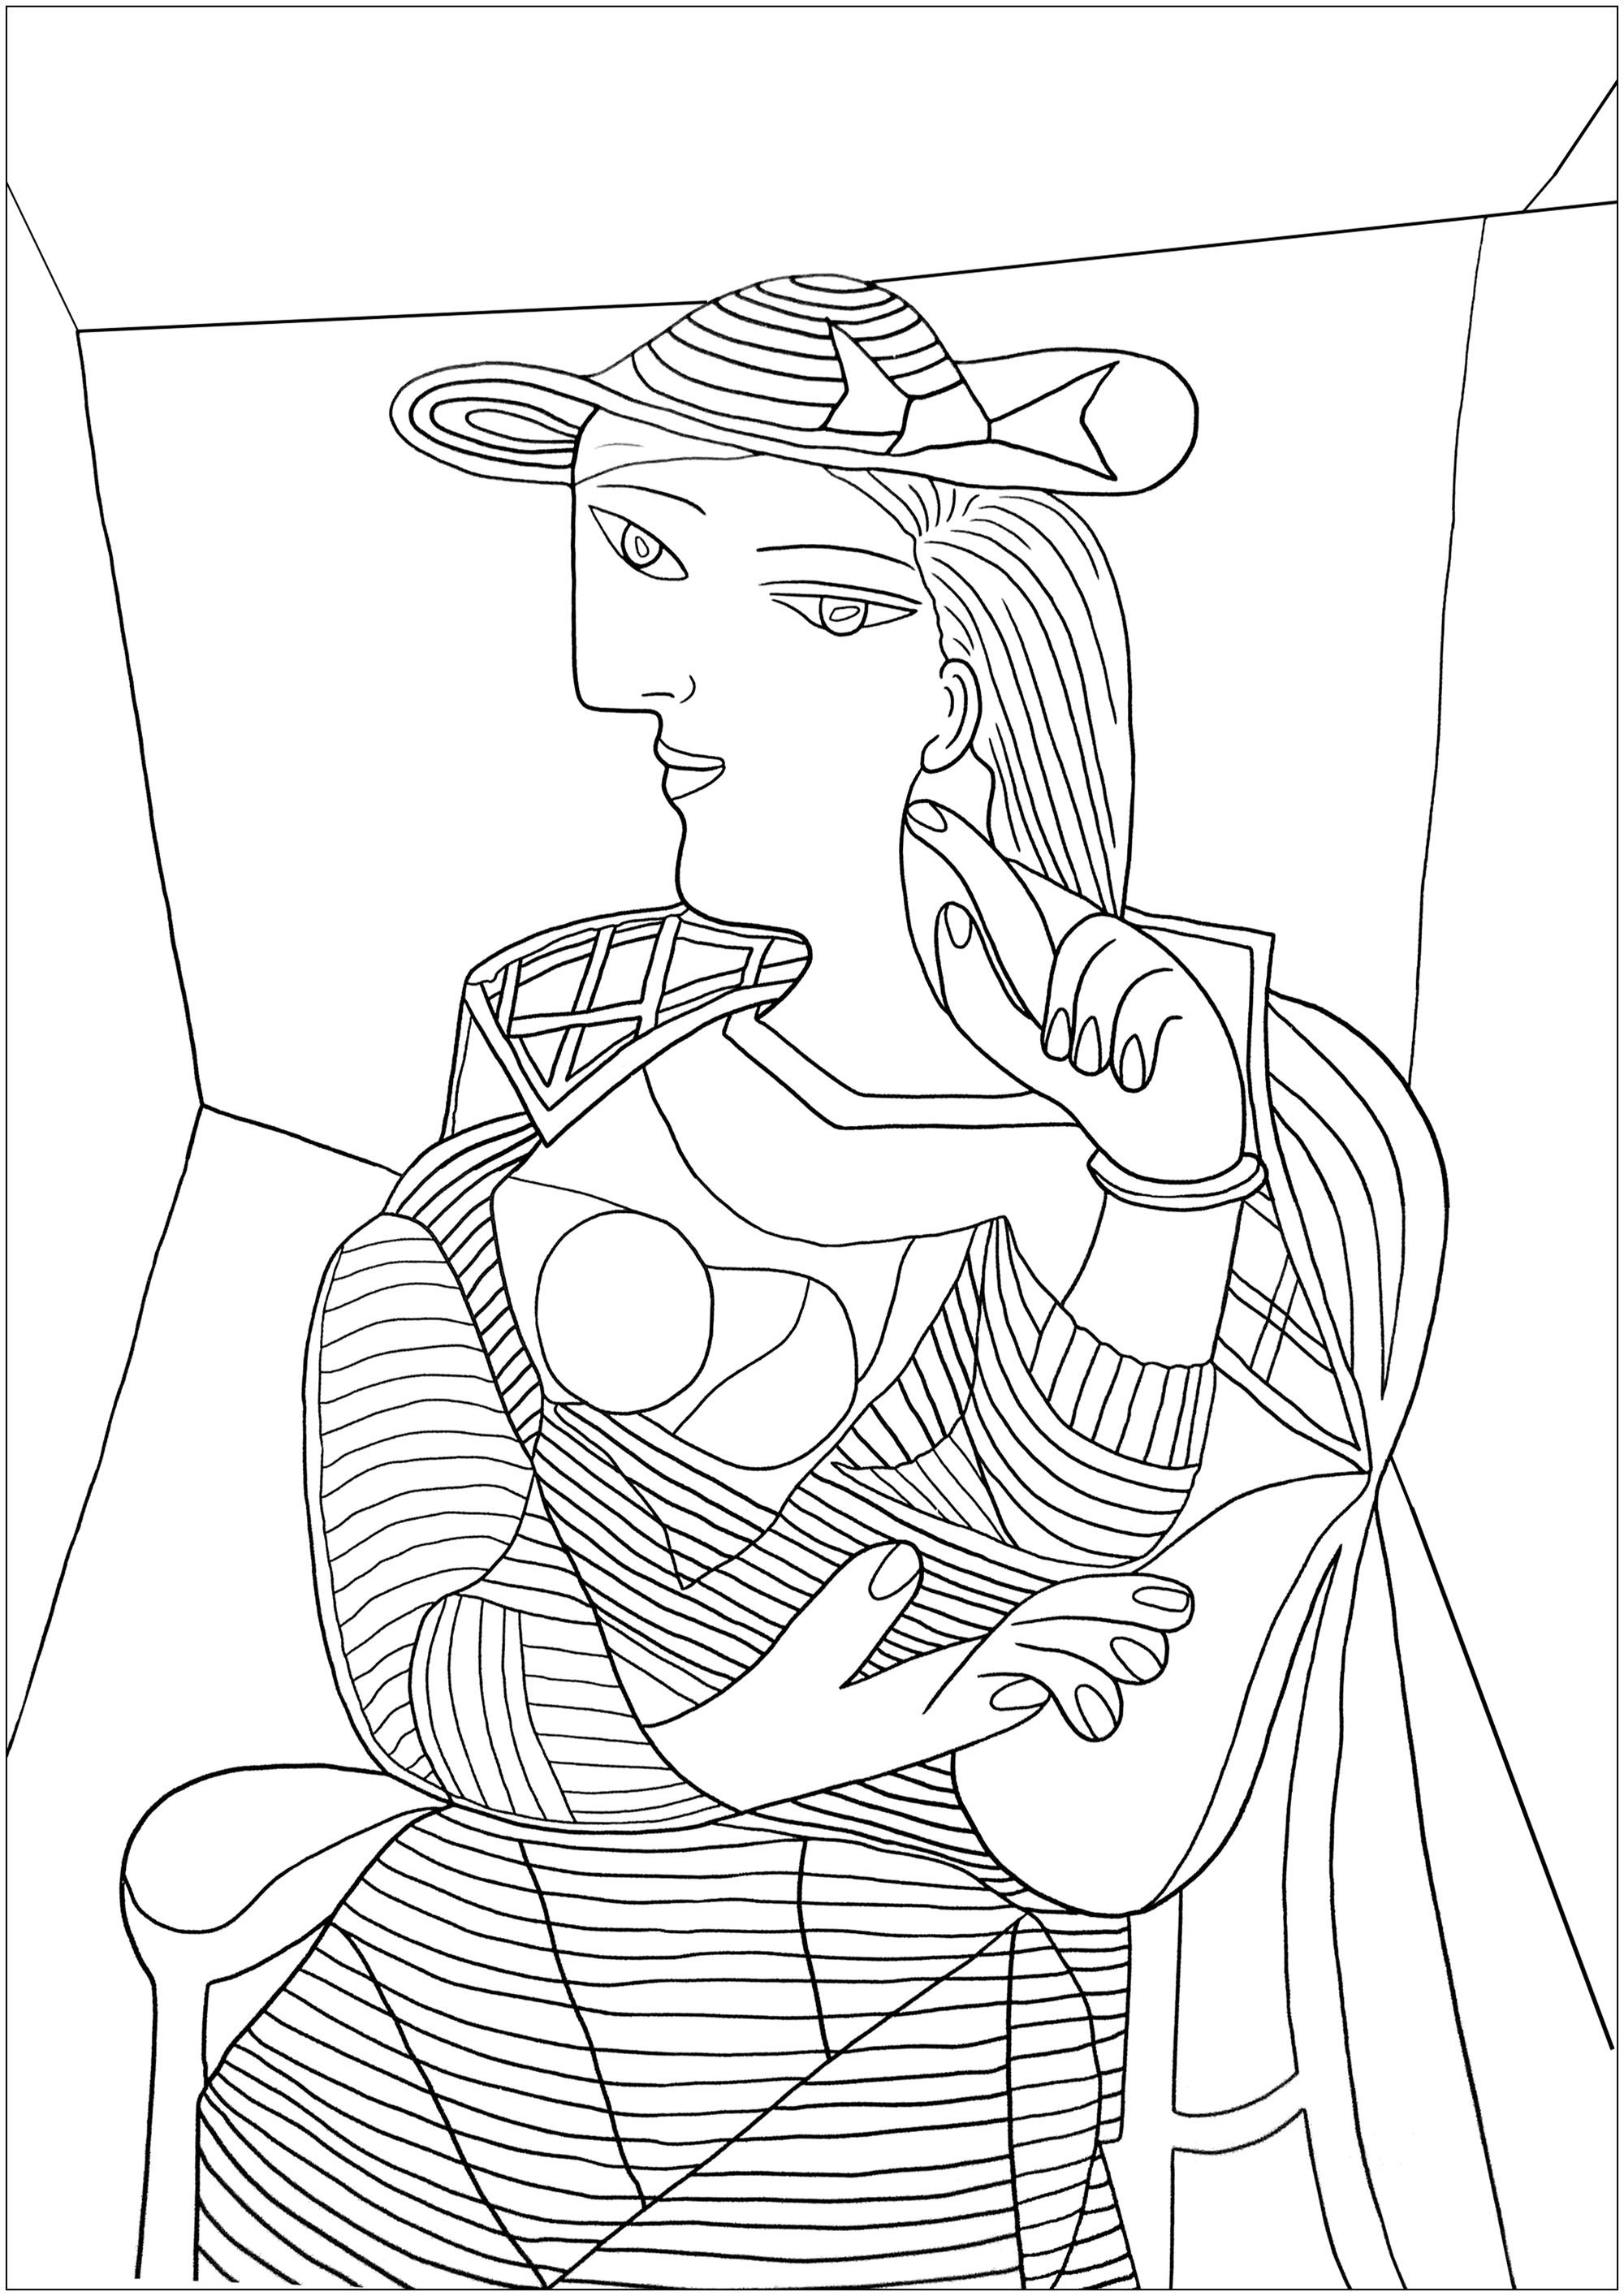 Pablo Picasso Coloring Pages For Adults Con Immagini